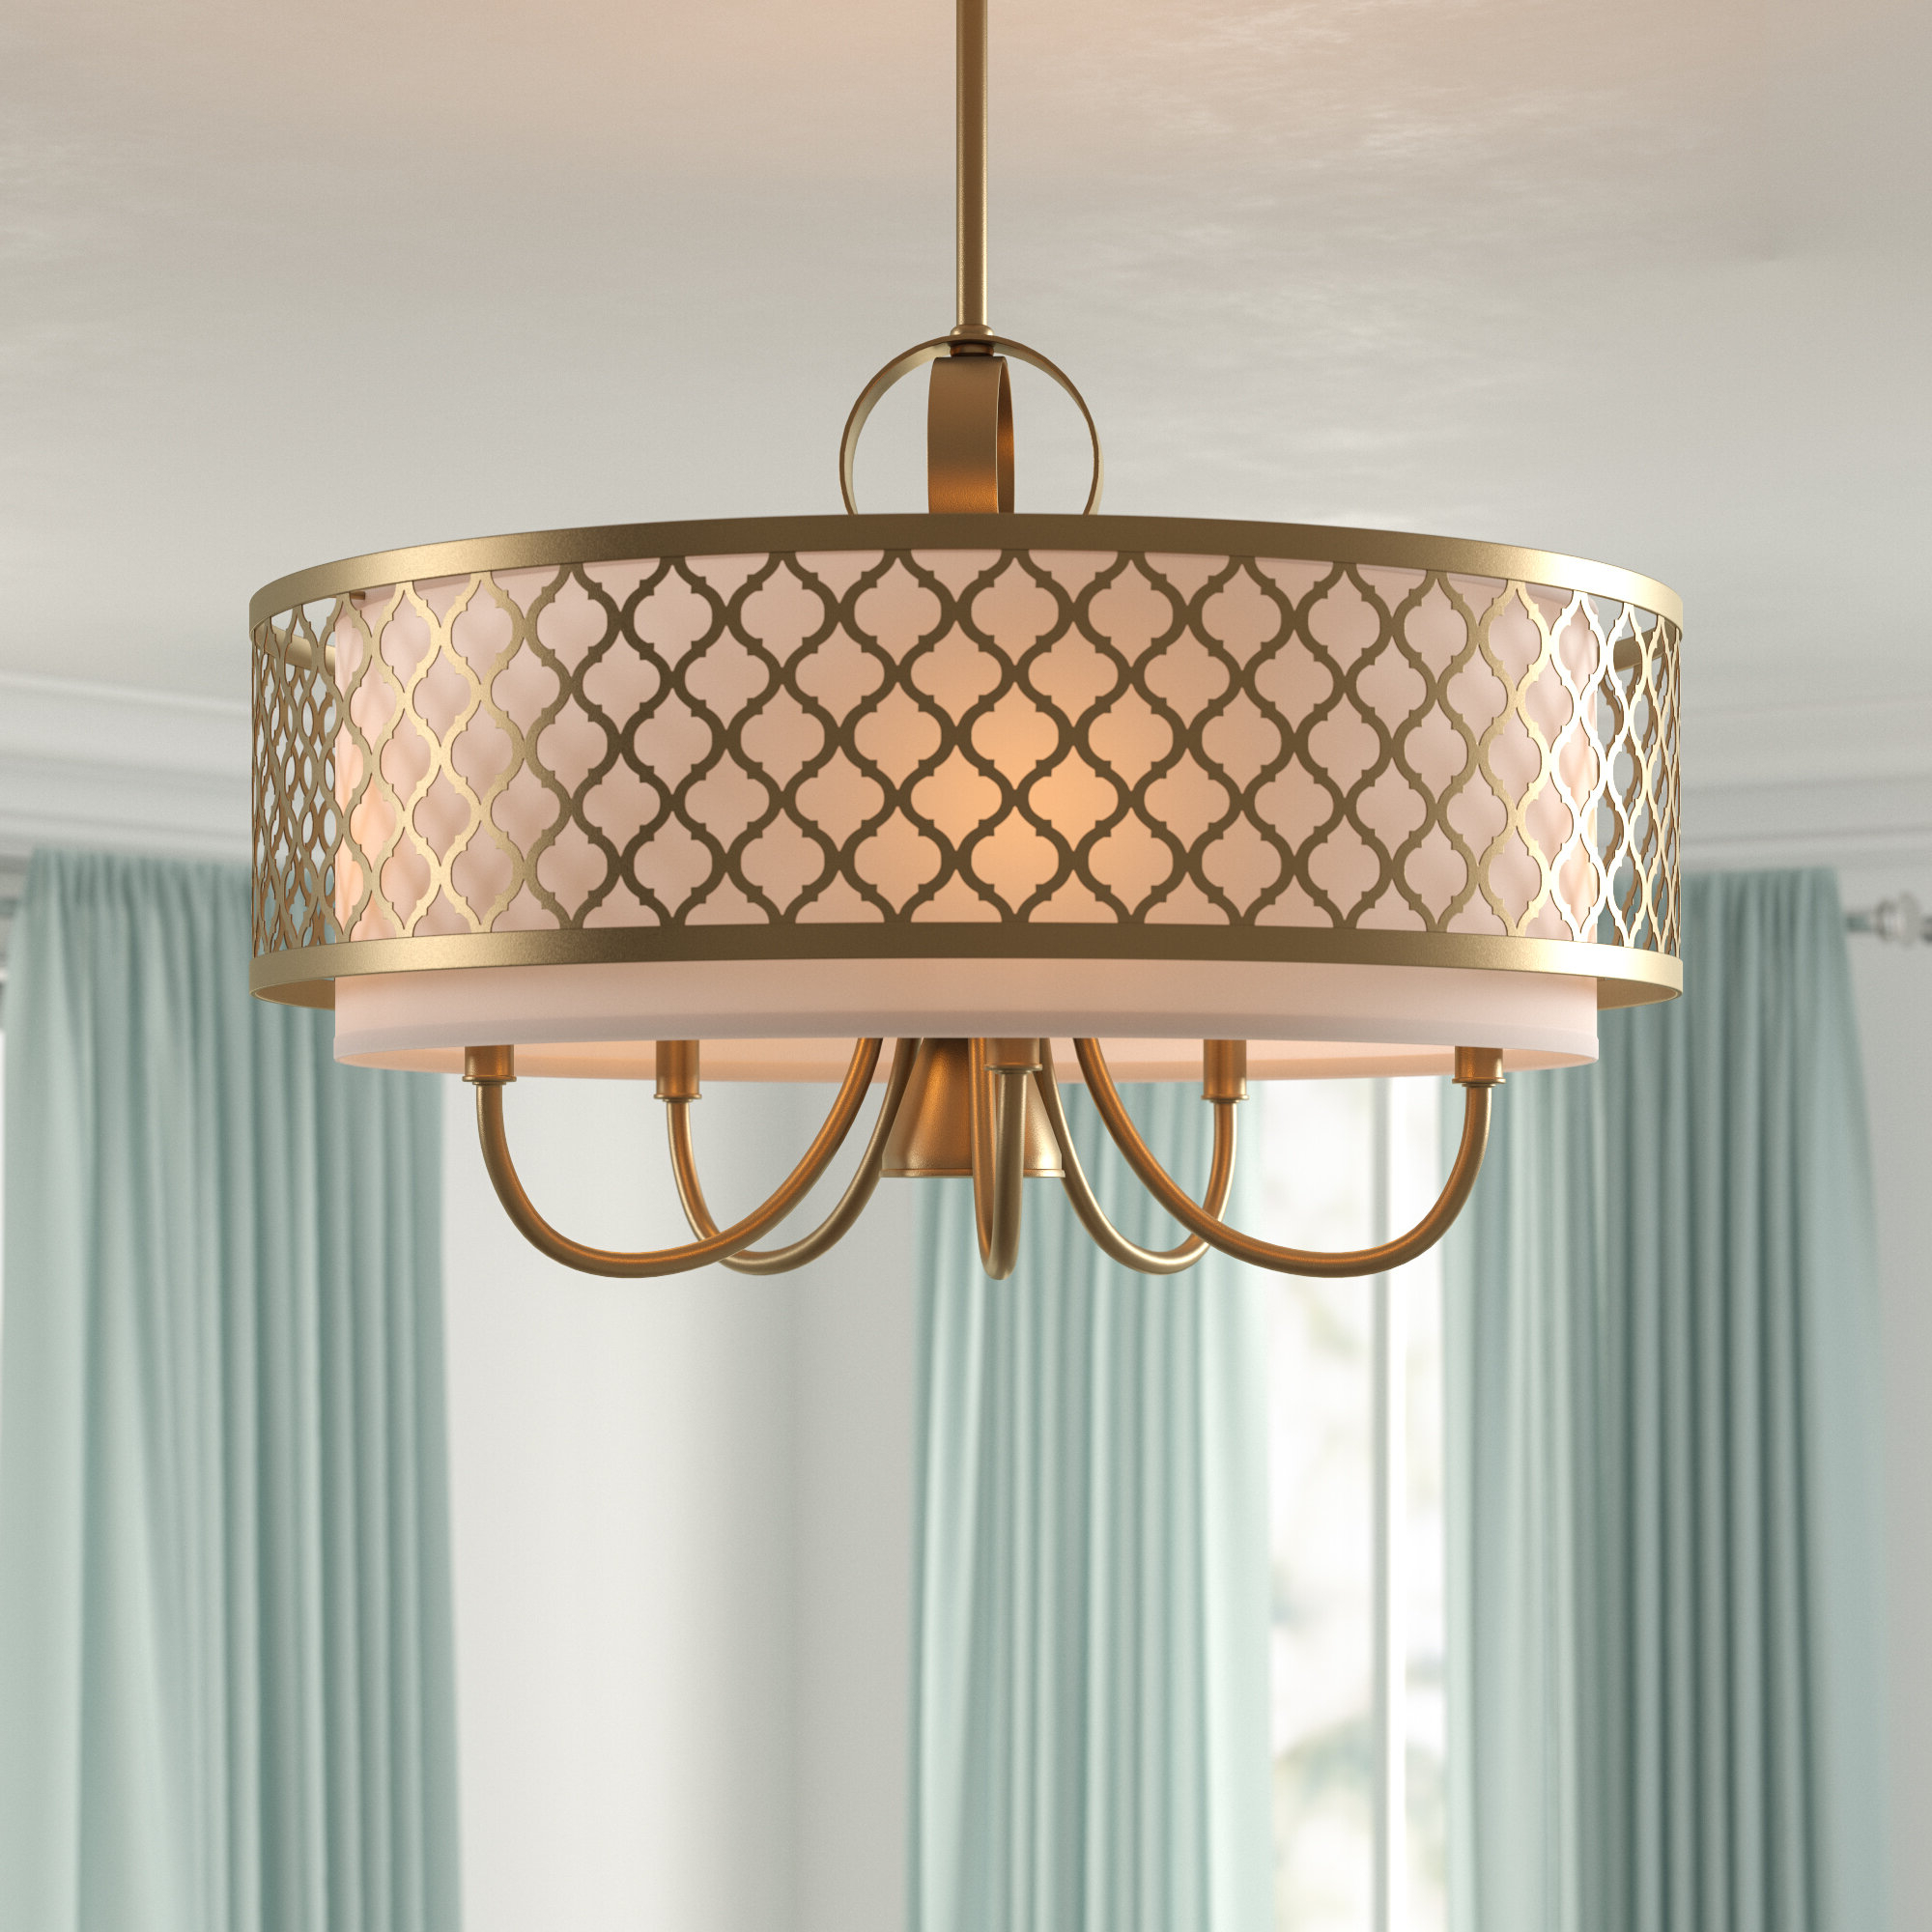 Newest Tymvou 6-Light Drum Chandelier & Reviews